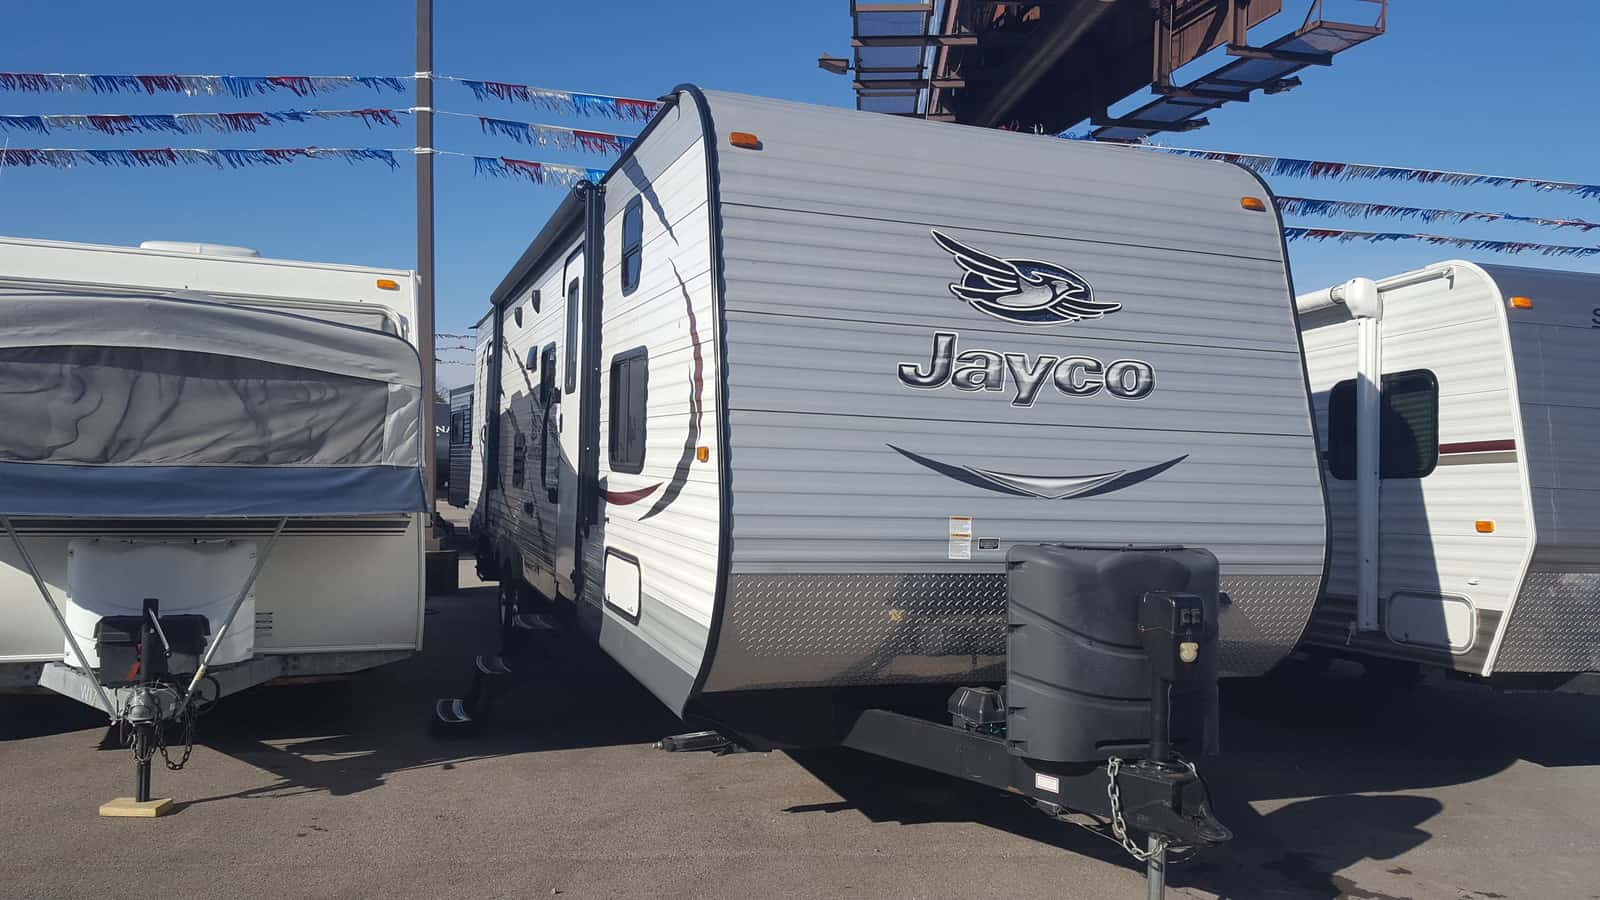 USED 2015 Jayco JAY FLIGHT 31QBDS - American RV